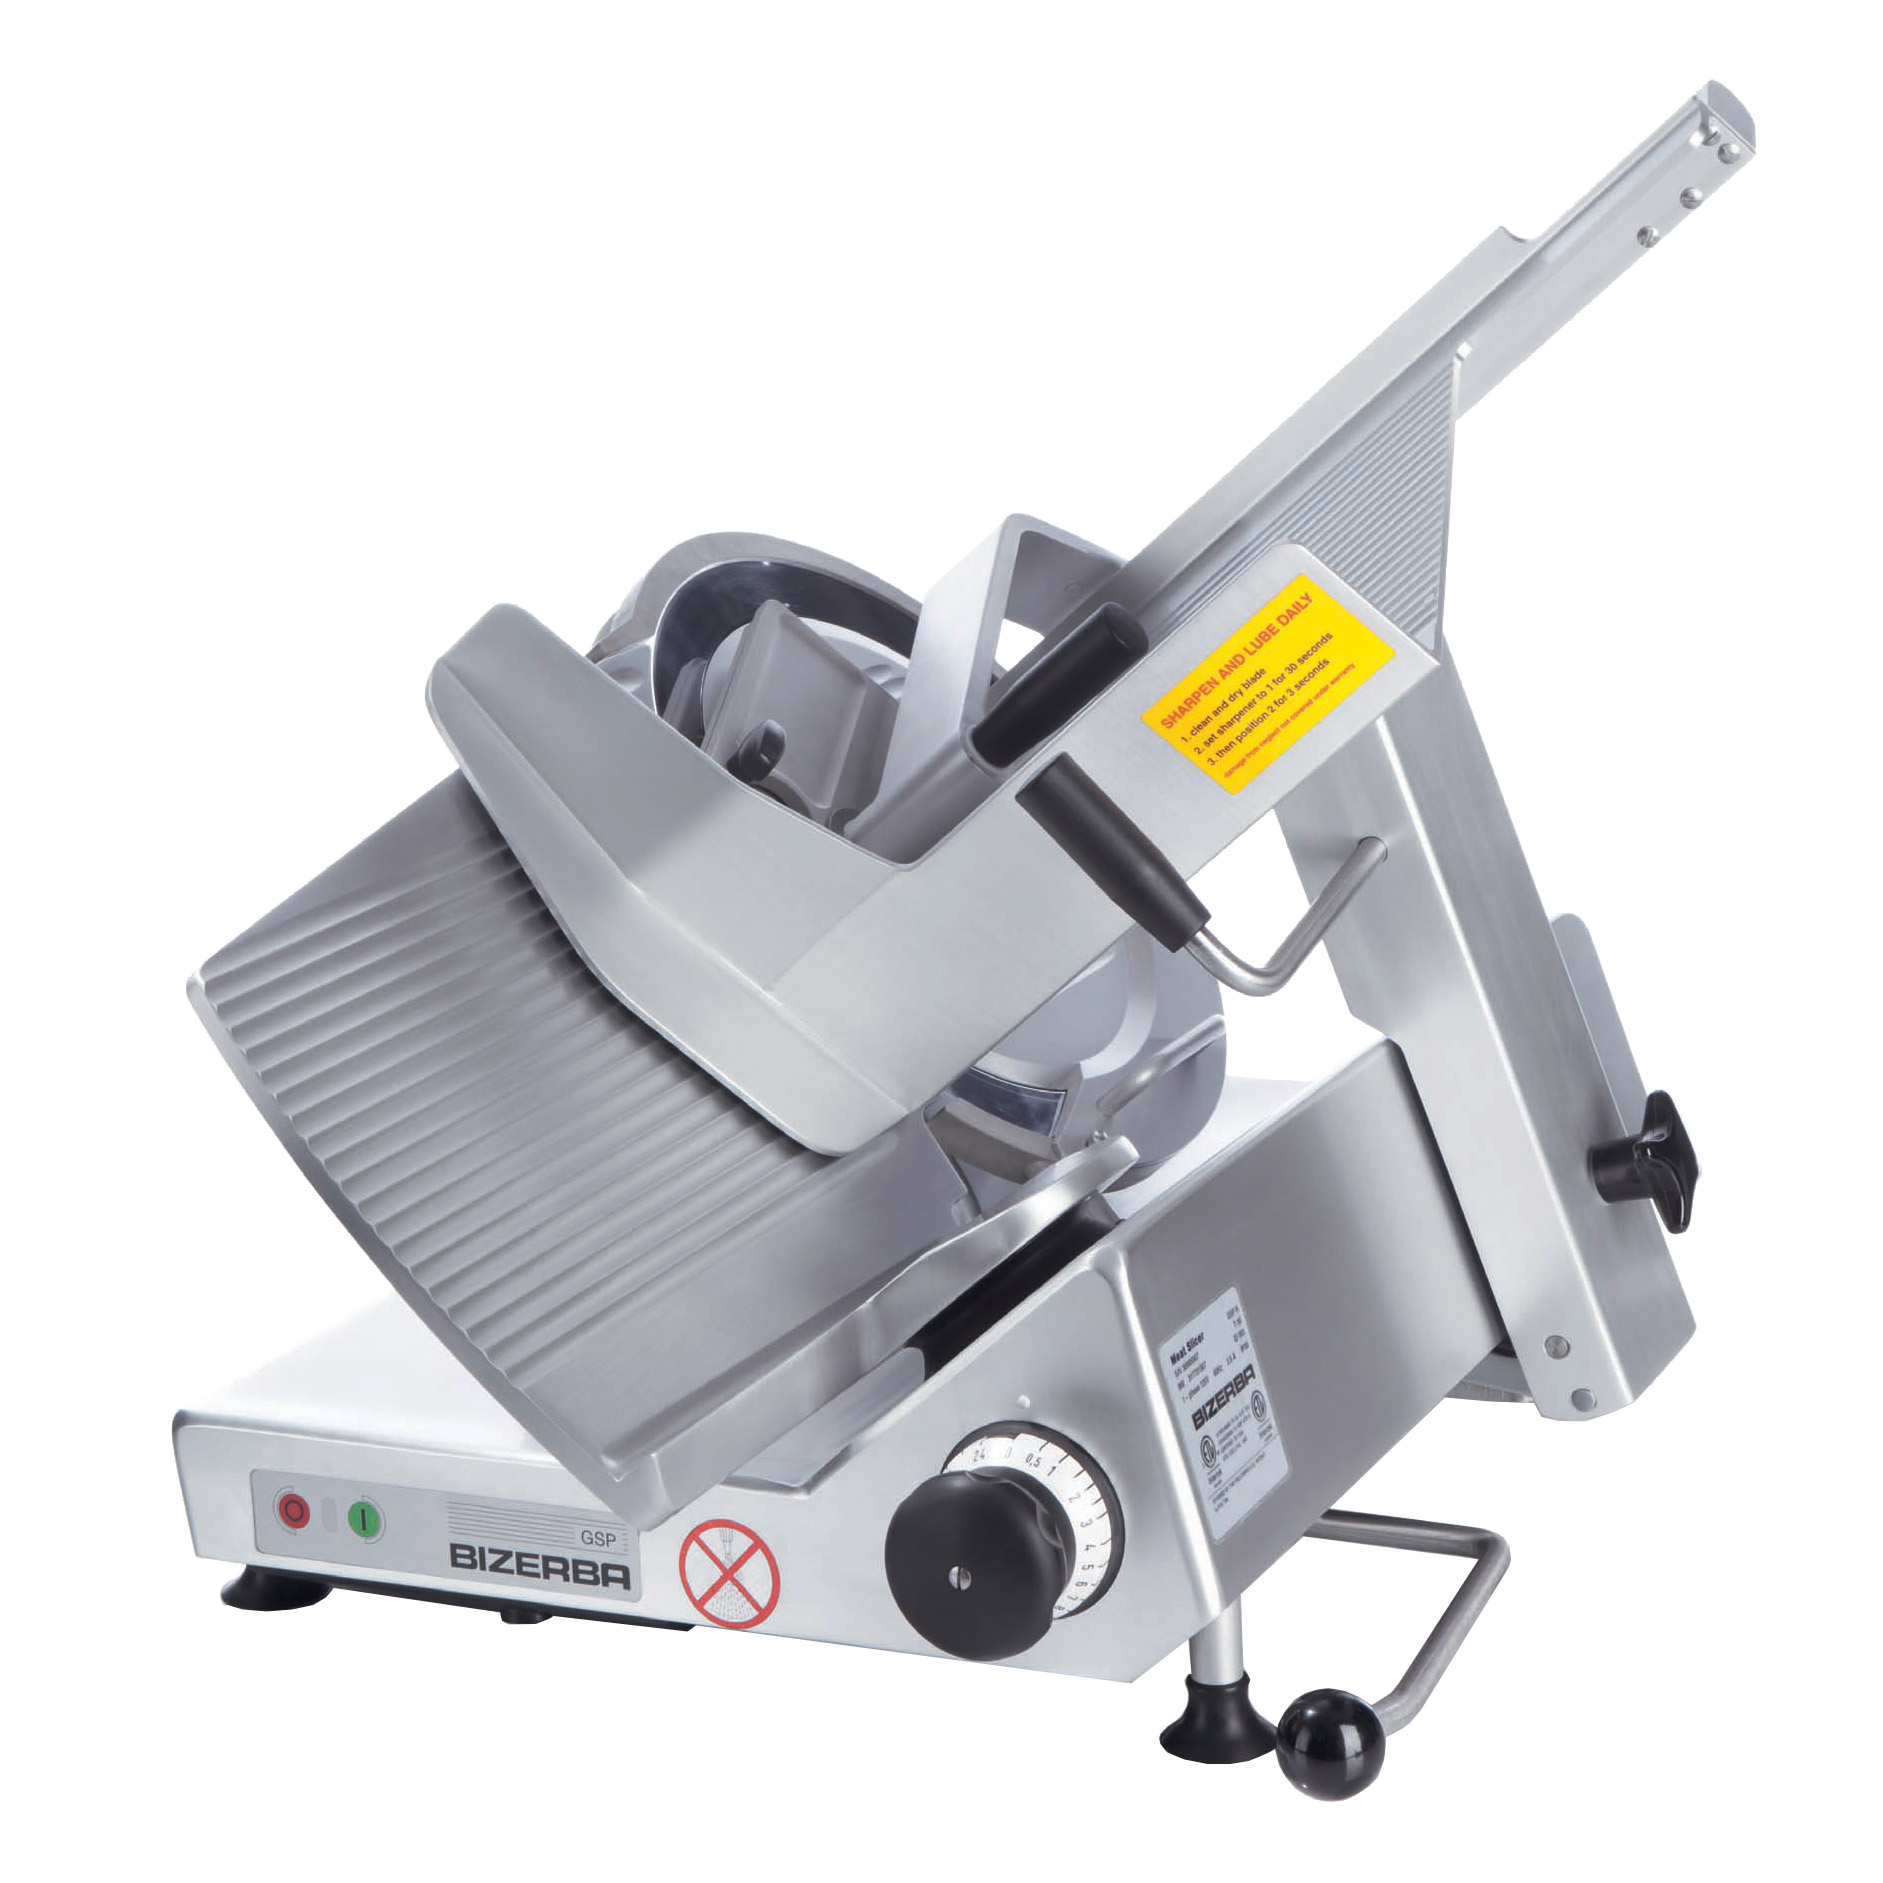 GSP H STD-90 Bizerba food slicer, electric